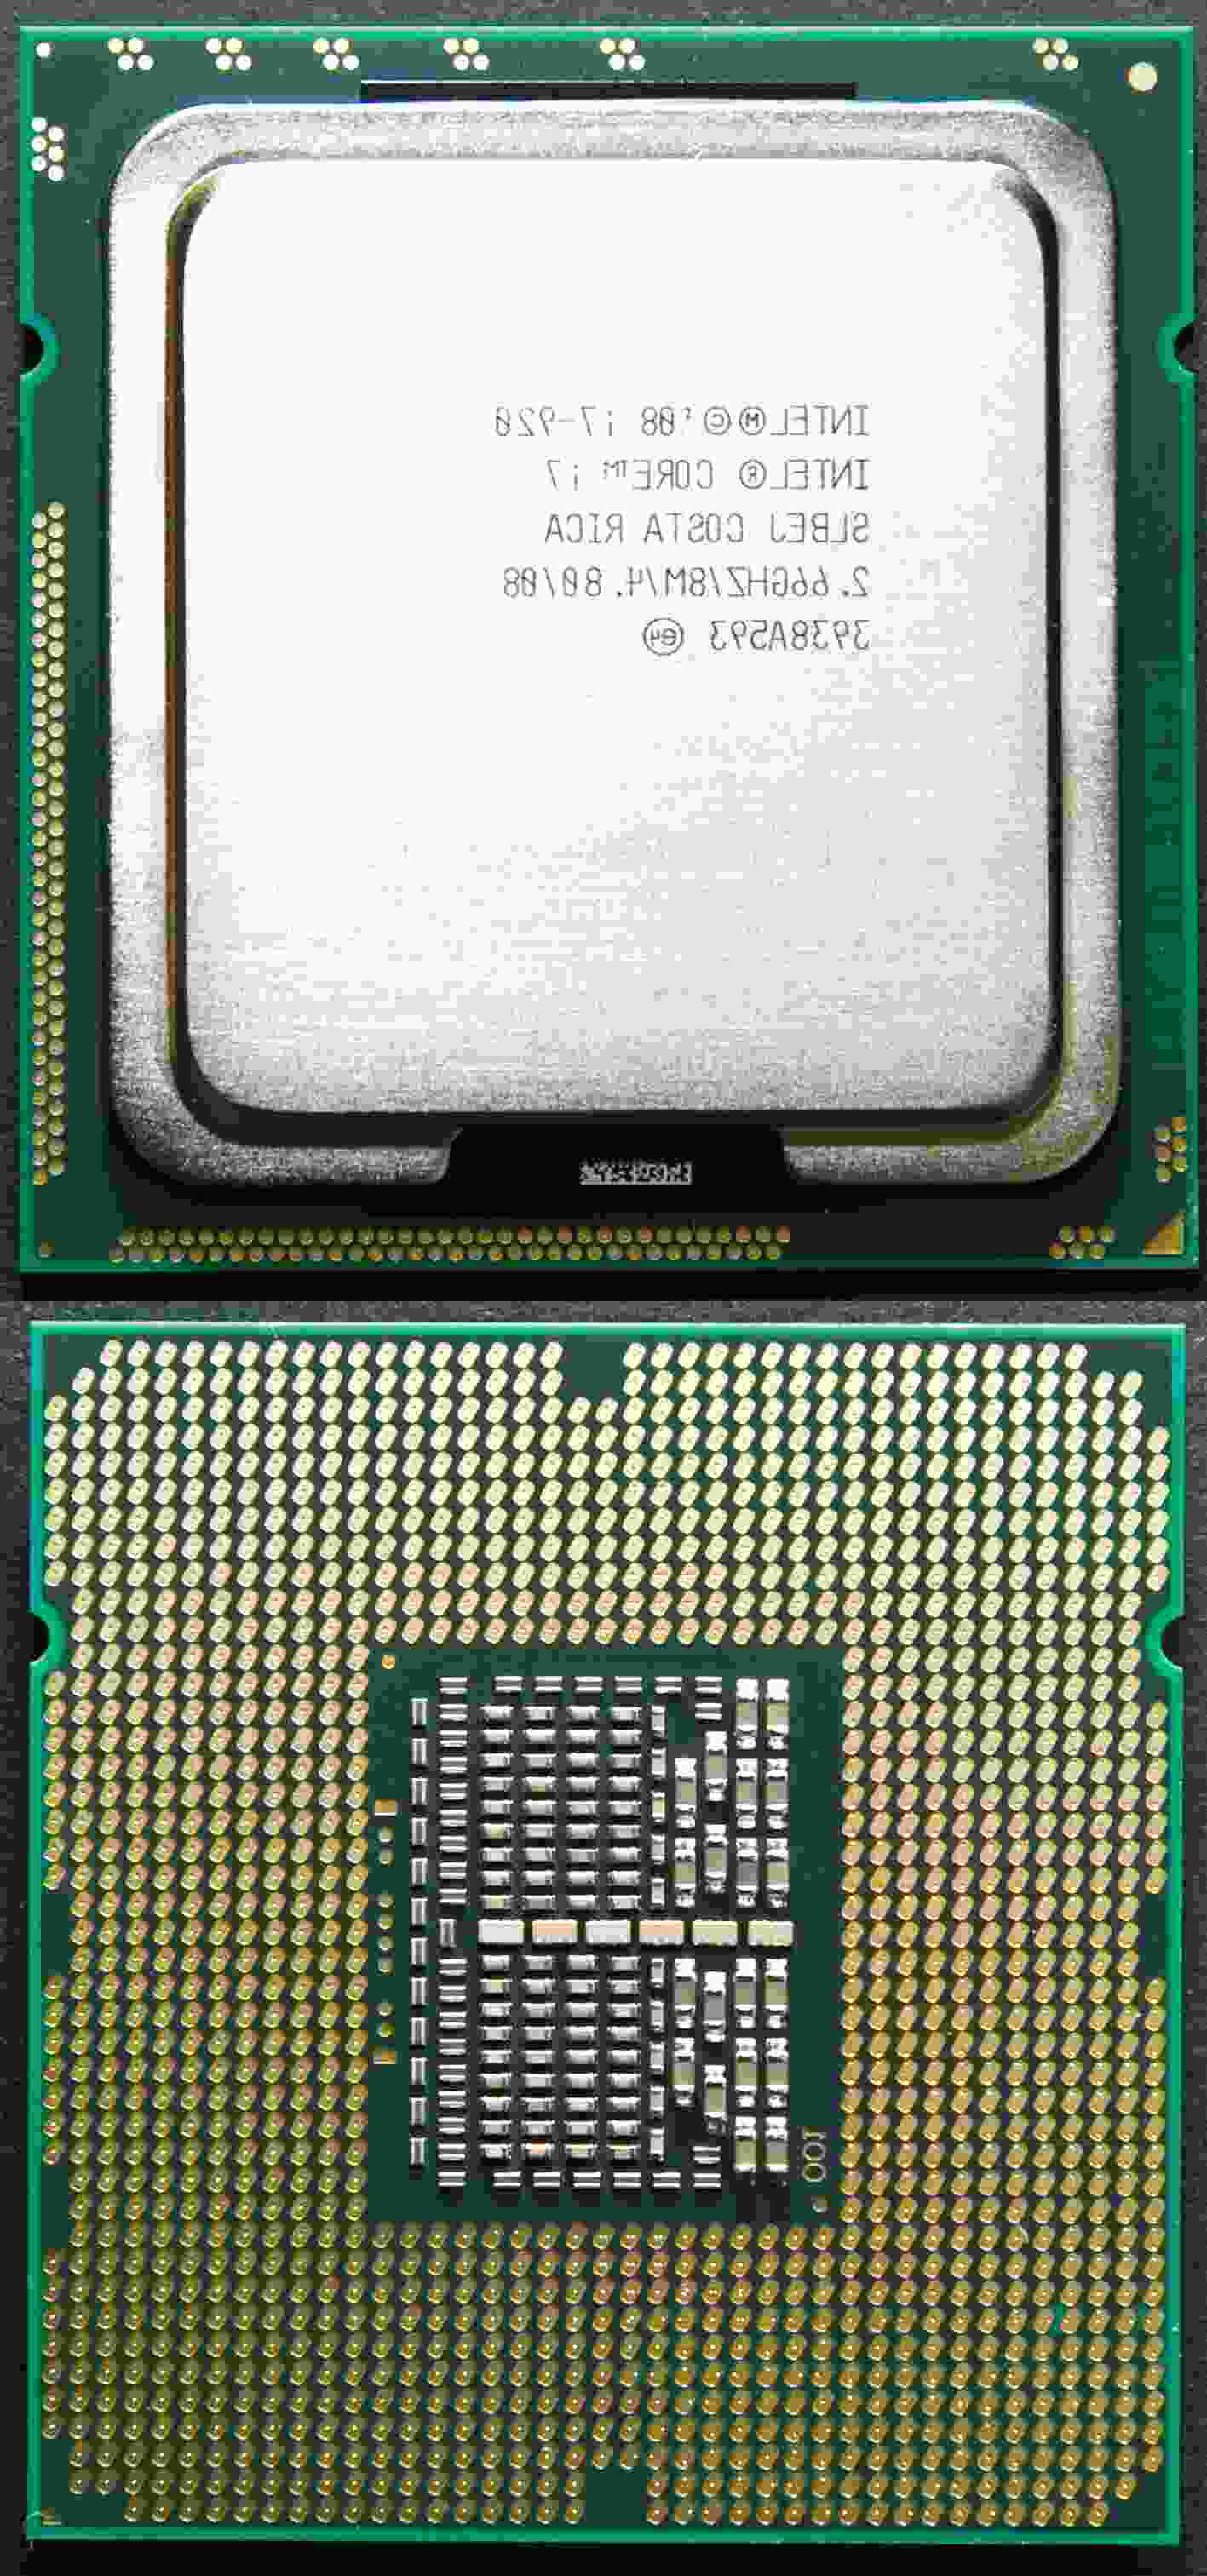 i7 980x for sale